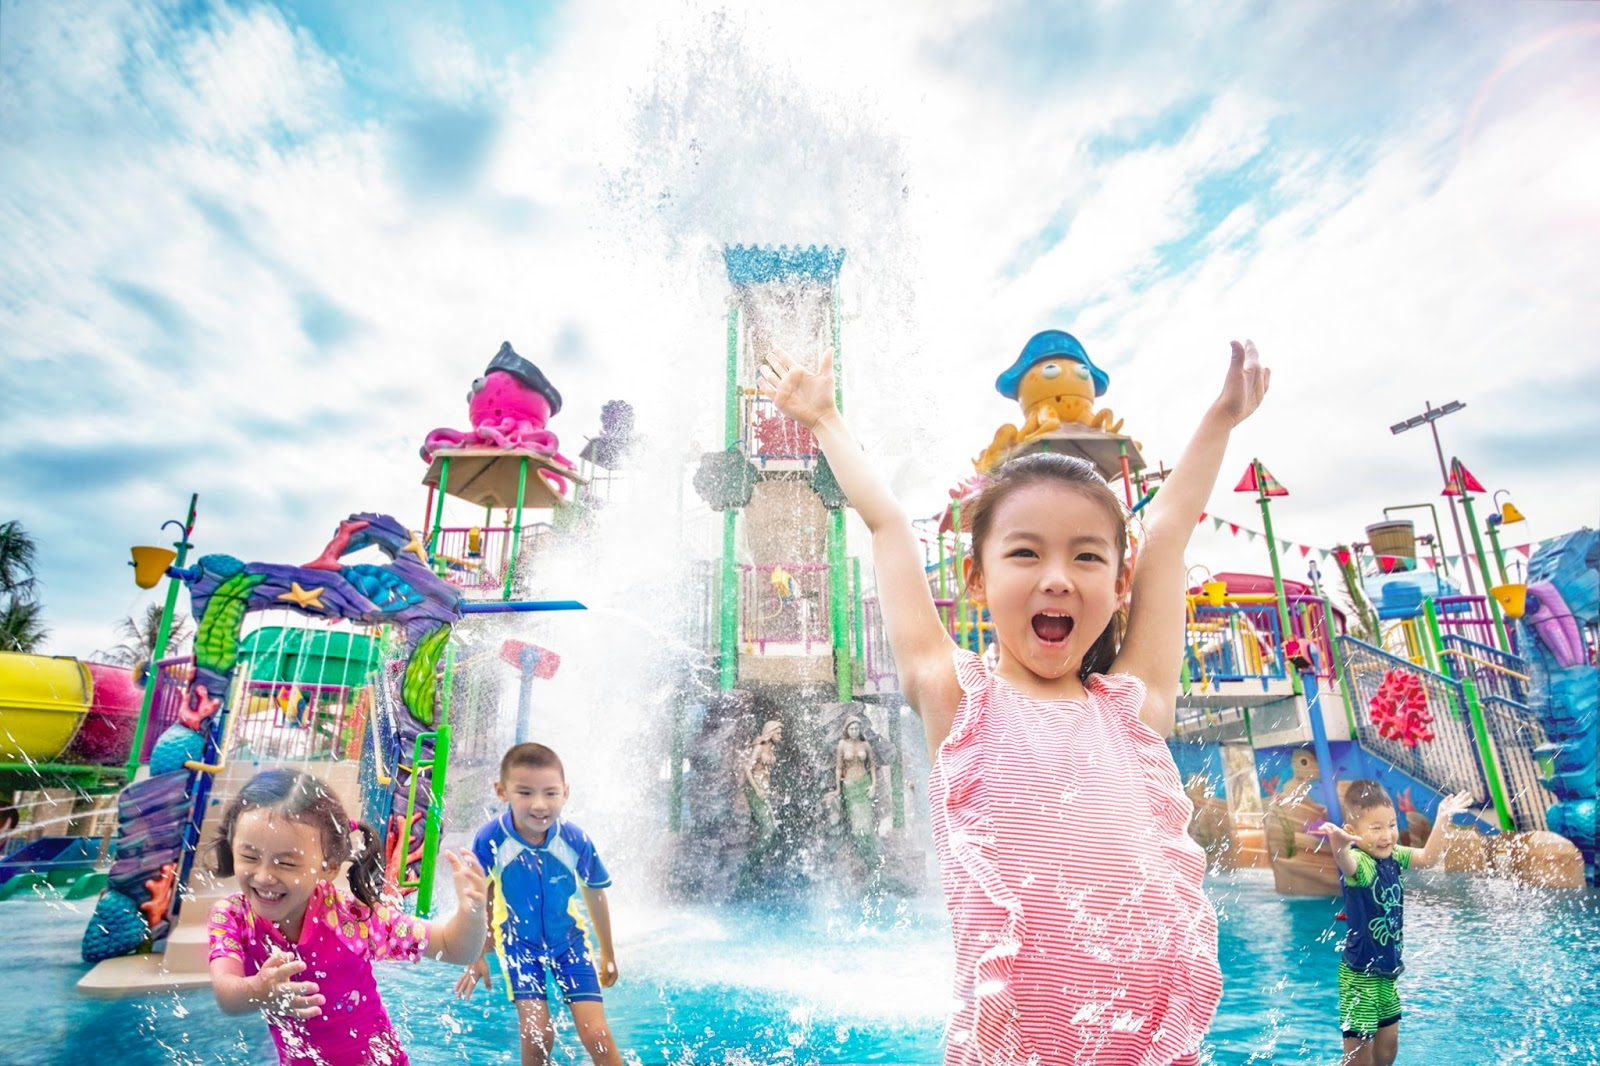 children playing at a water park